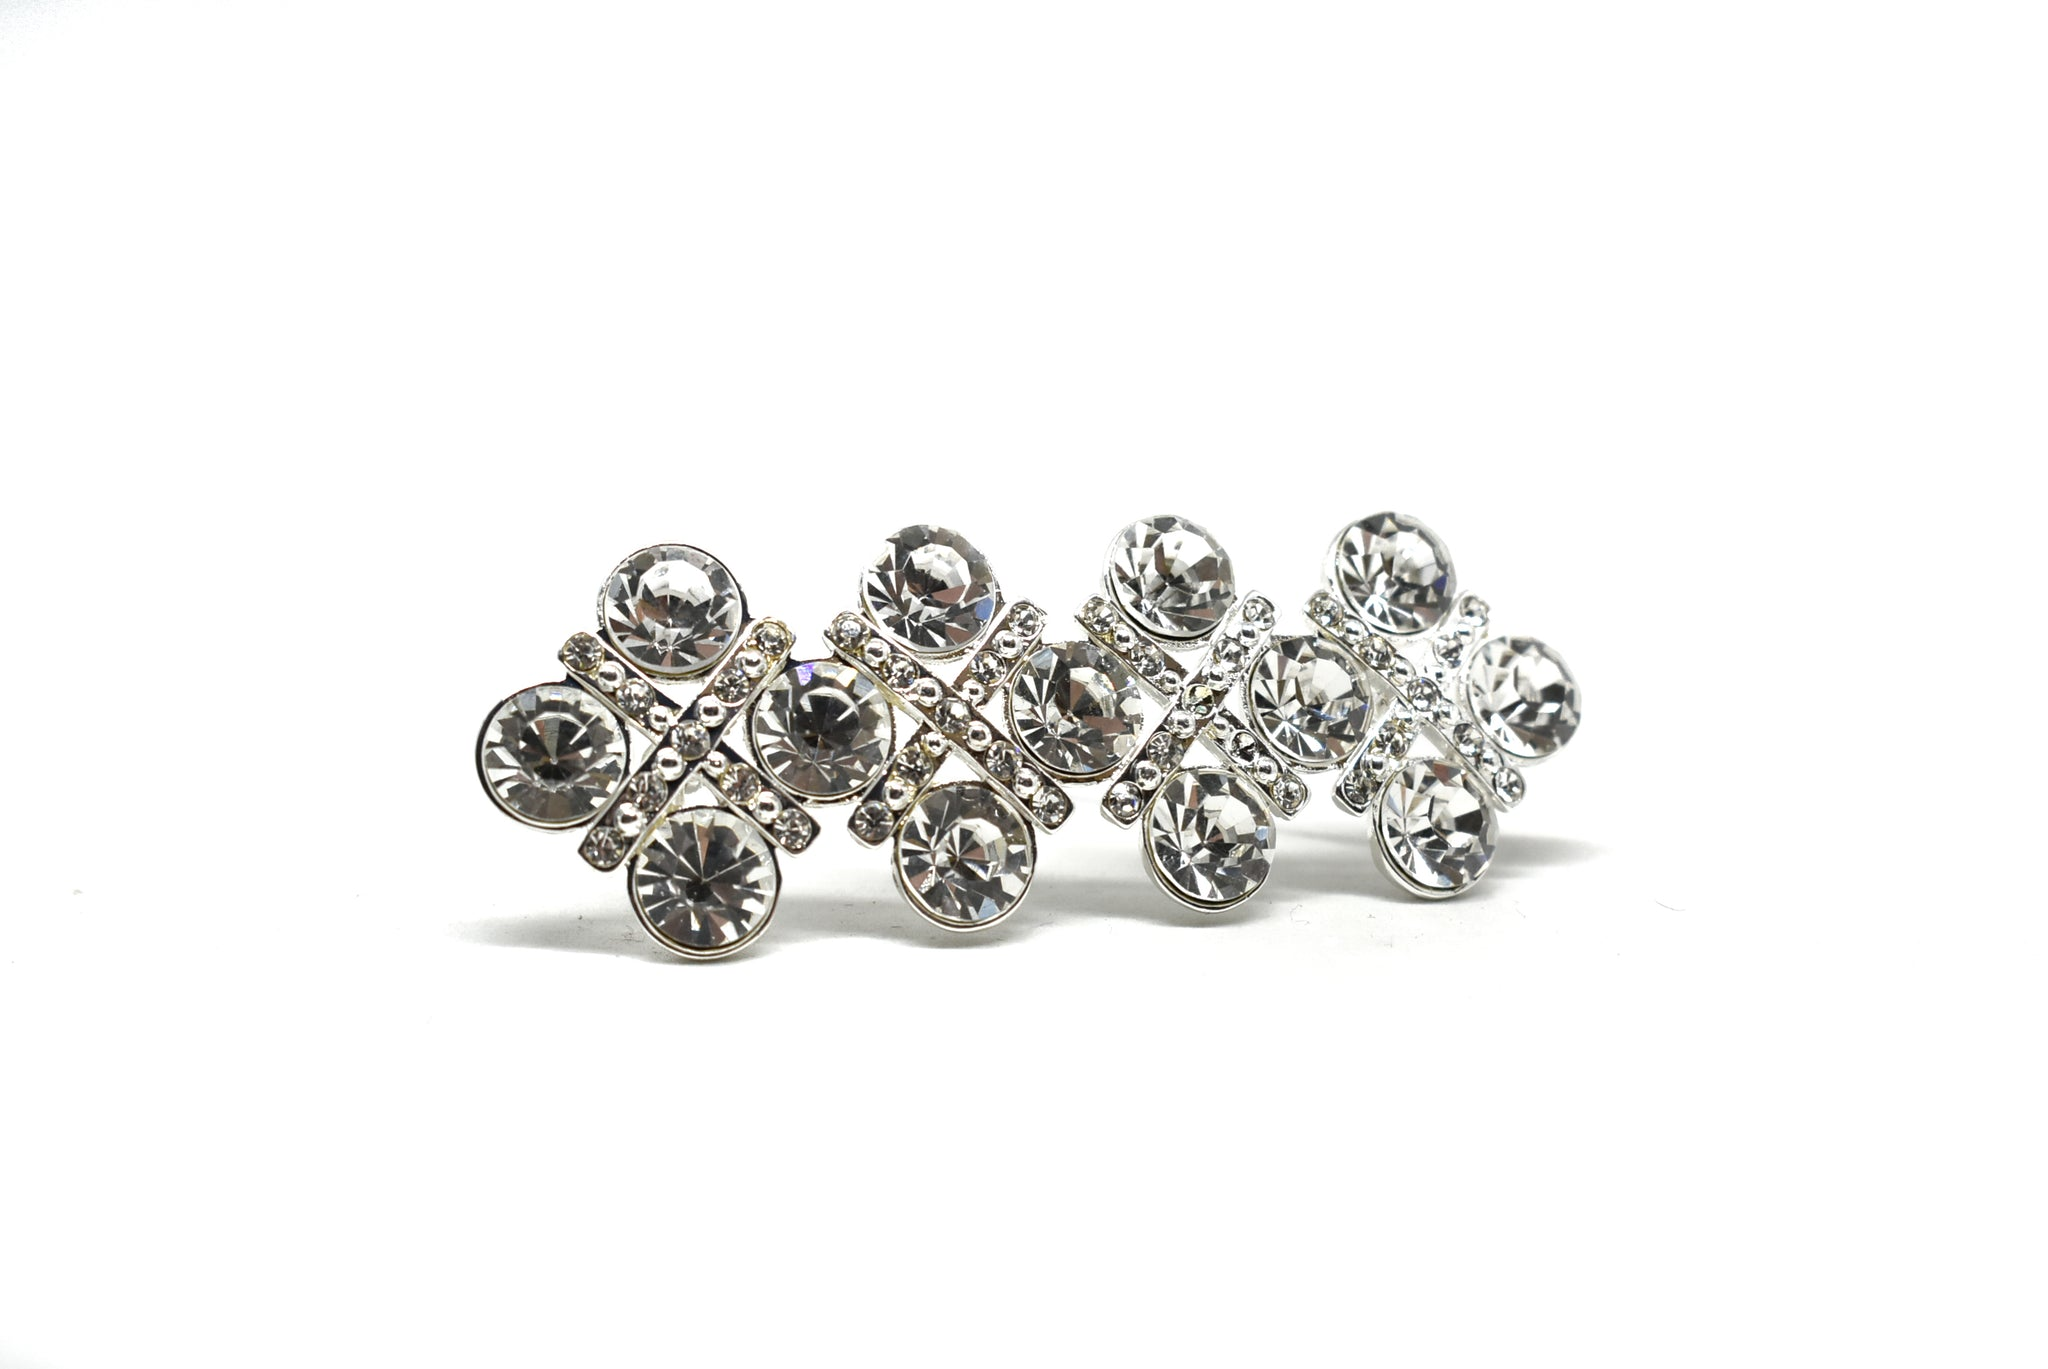 "Crystal Rhinestone Brooch With Pin 3"" x 1"" - 1 Piece"